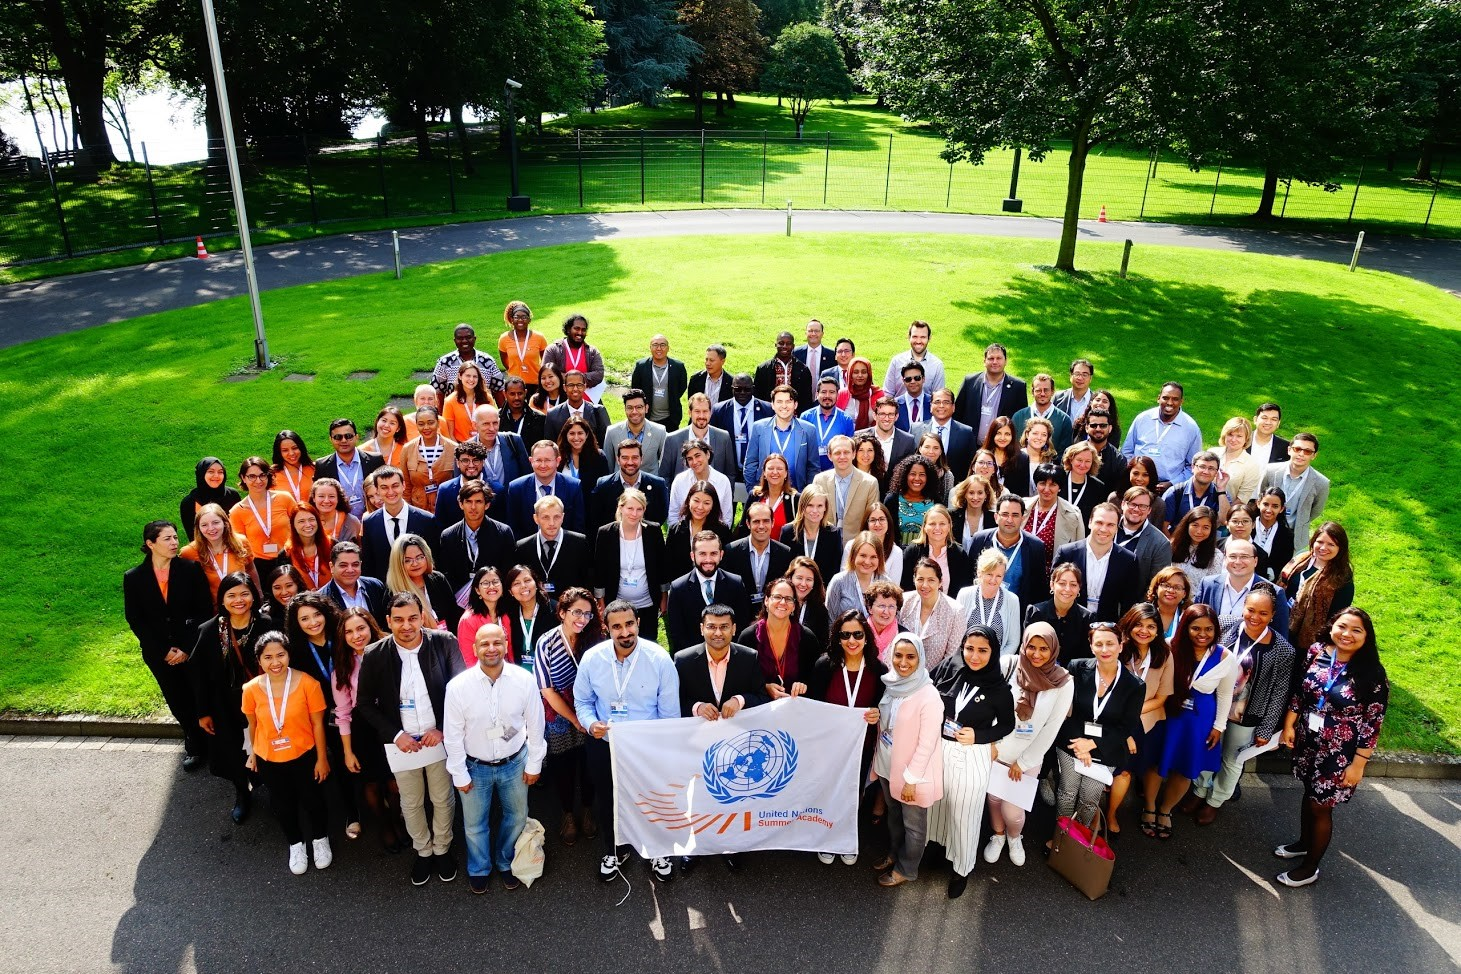 Call for Volunteers for the United Nations Summer Academy 2018 in Bonn, Germany